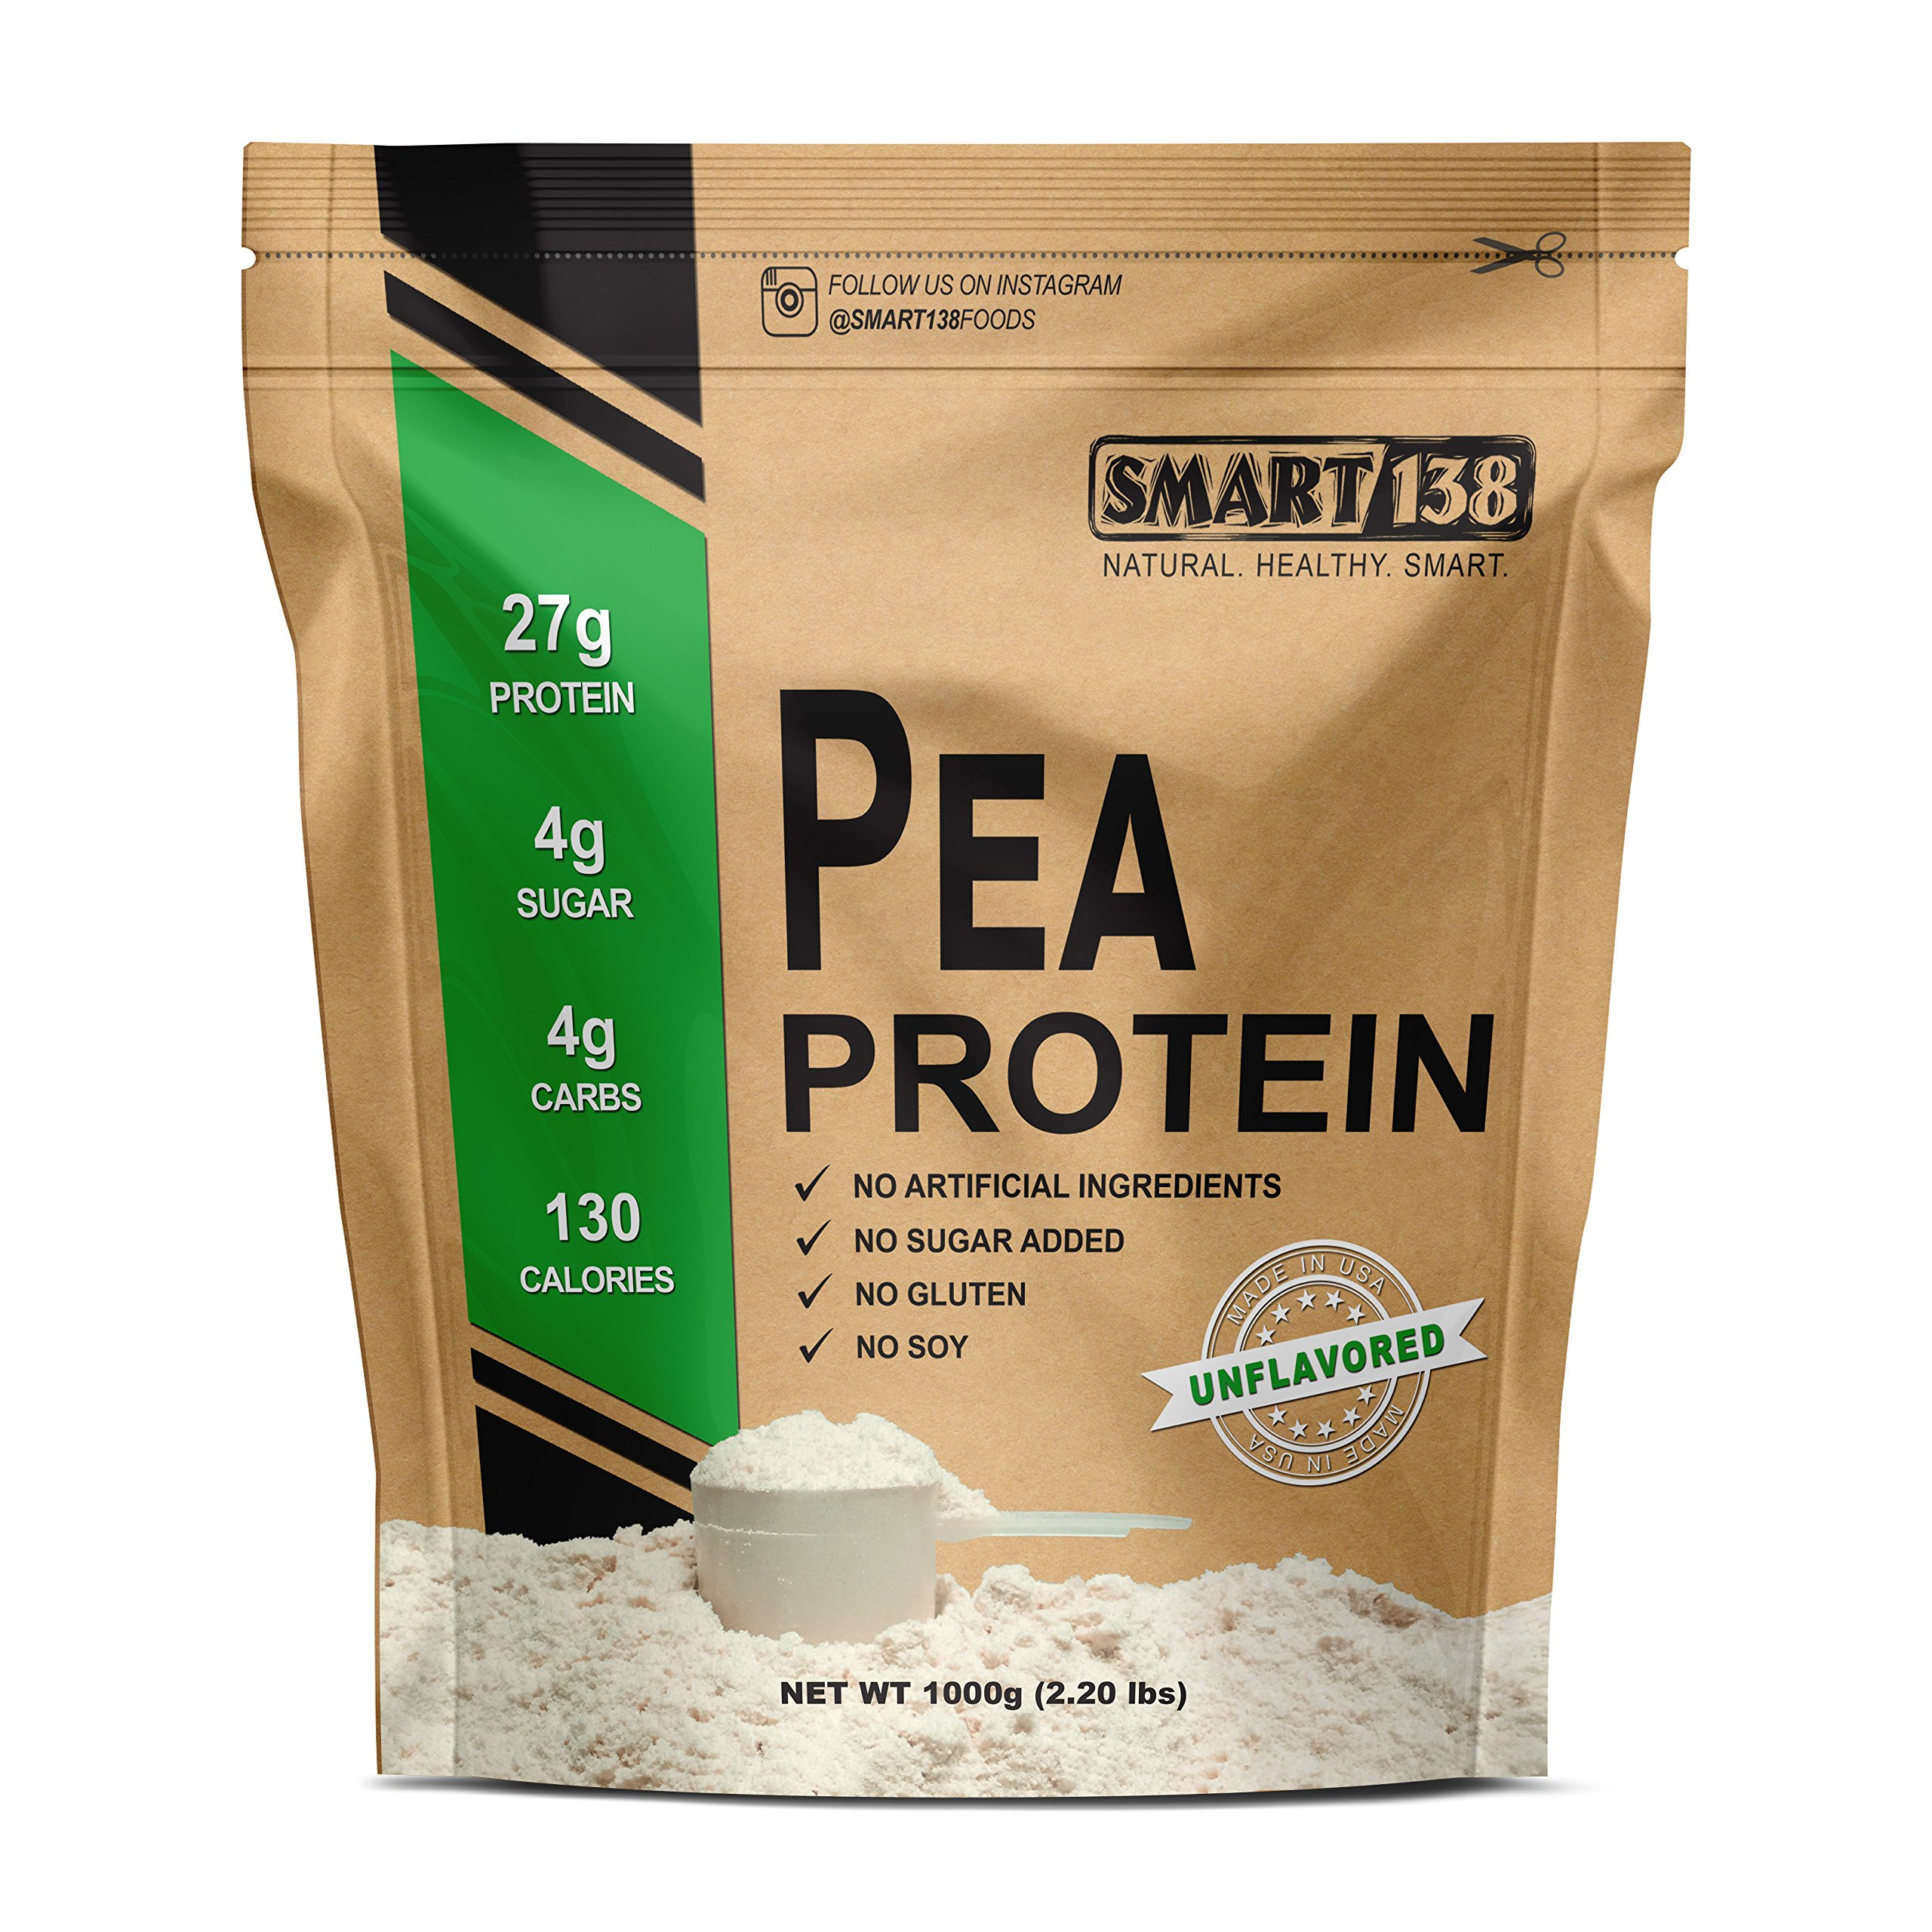 100% Pure Pea Protein, Ultra Smooth Powder, Vegan, Gluten-Free, Soy-Free, Dairy-Free, Non-GMO, USA/Canada, Keto (Low Carb), Natural BCAAs (1000g / 2.2lbs, Unflavored)